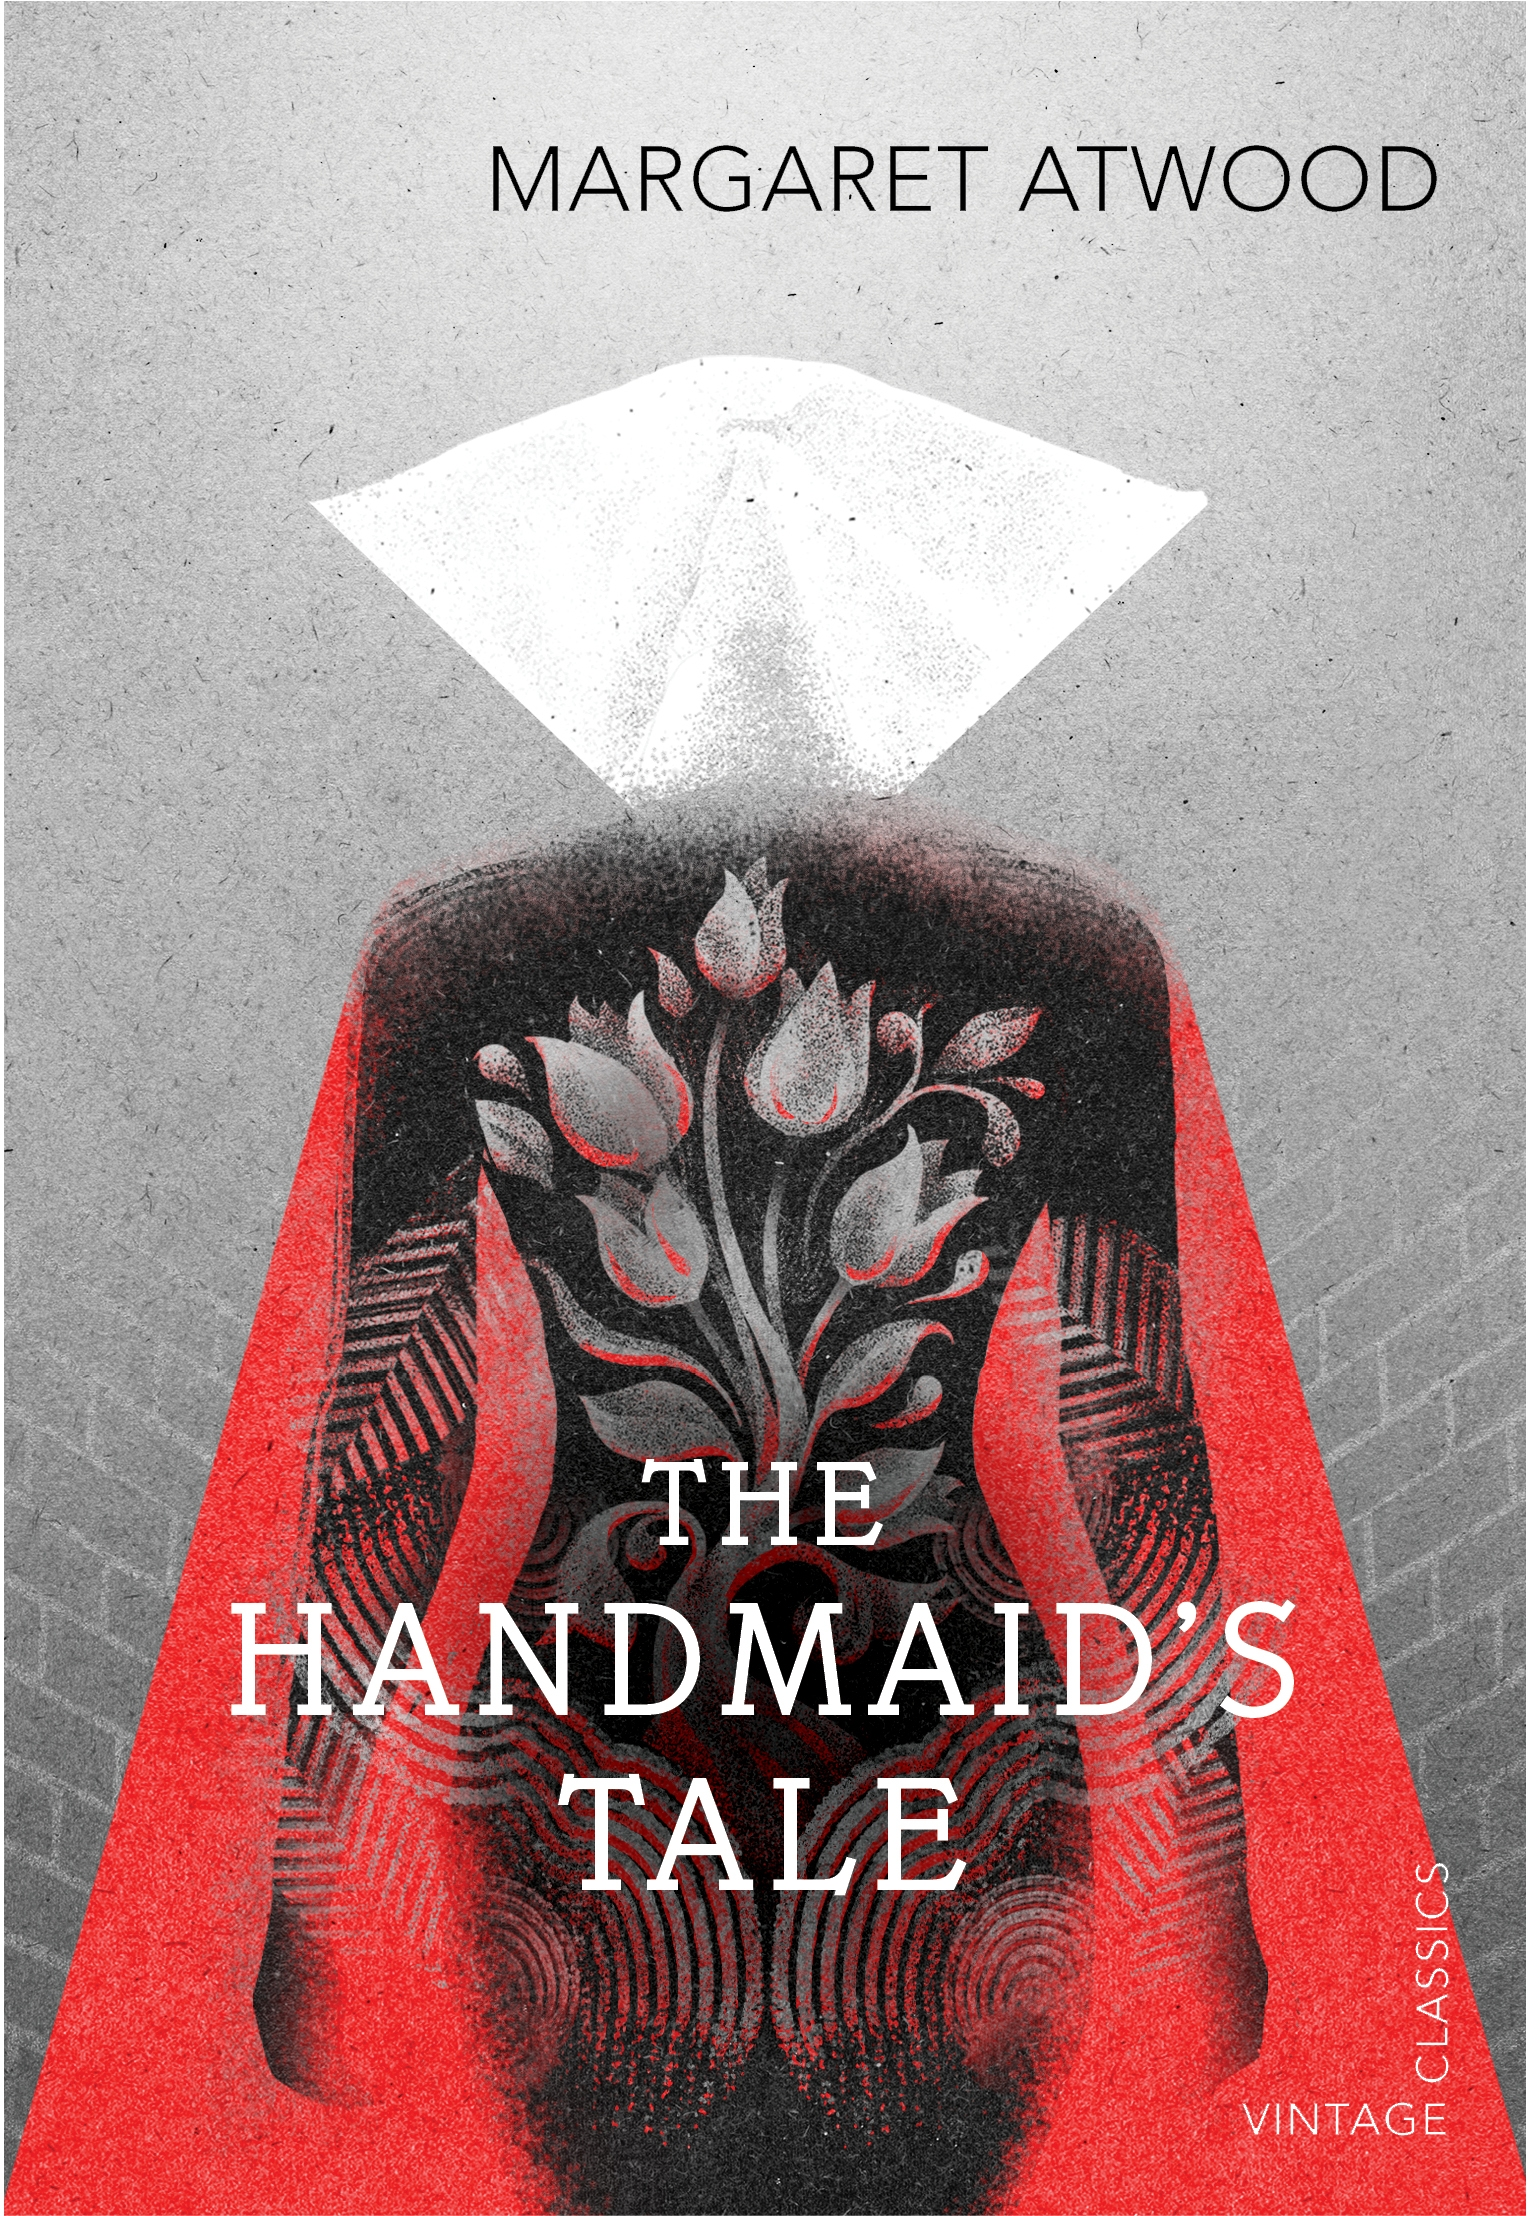 an analysis of the themes of humanity in the novel the handmaids tale by margaret atwood A summary of symbols in margaret atwood's the handmaid's tale learn exactly what happened in this chapter, scene, or section of the handmaid's tale and what it means perfect for acing essays, tests, and quizzes, as well as for writing lesson plans.